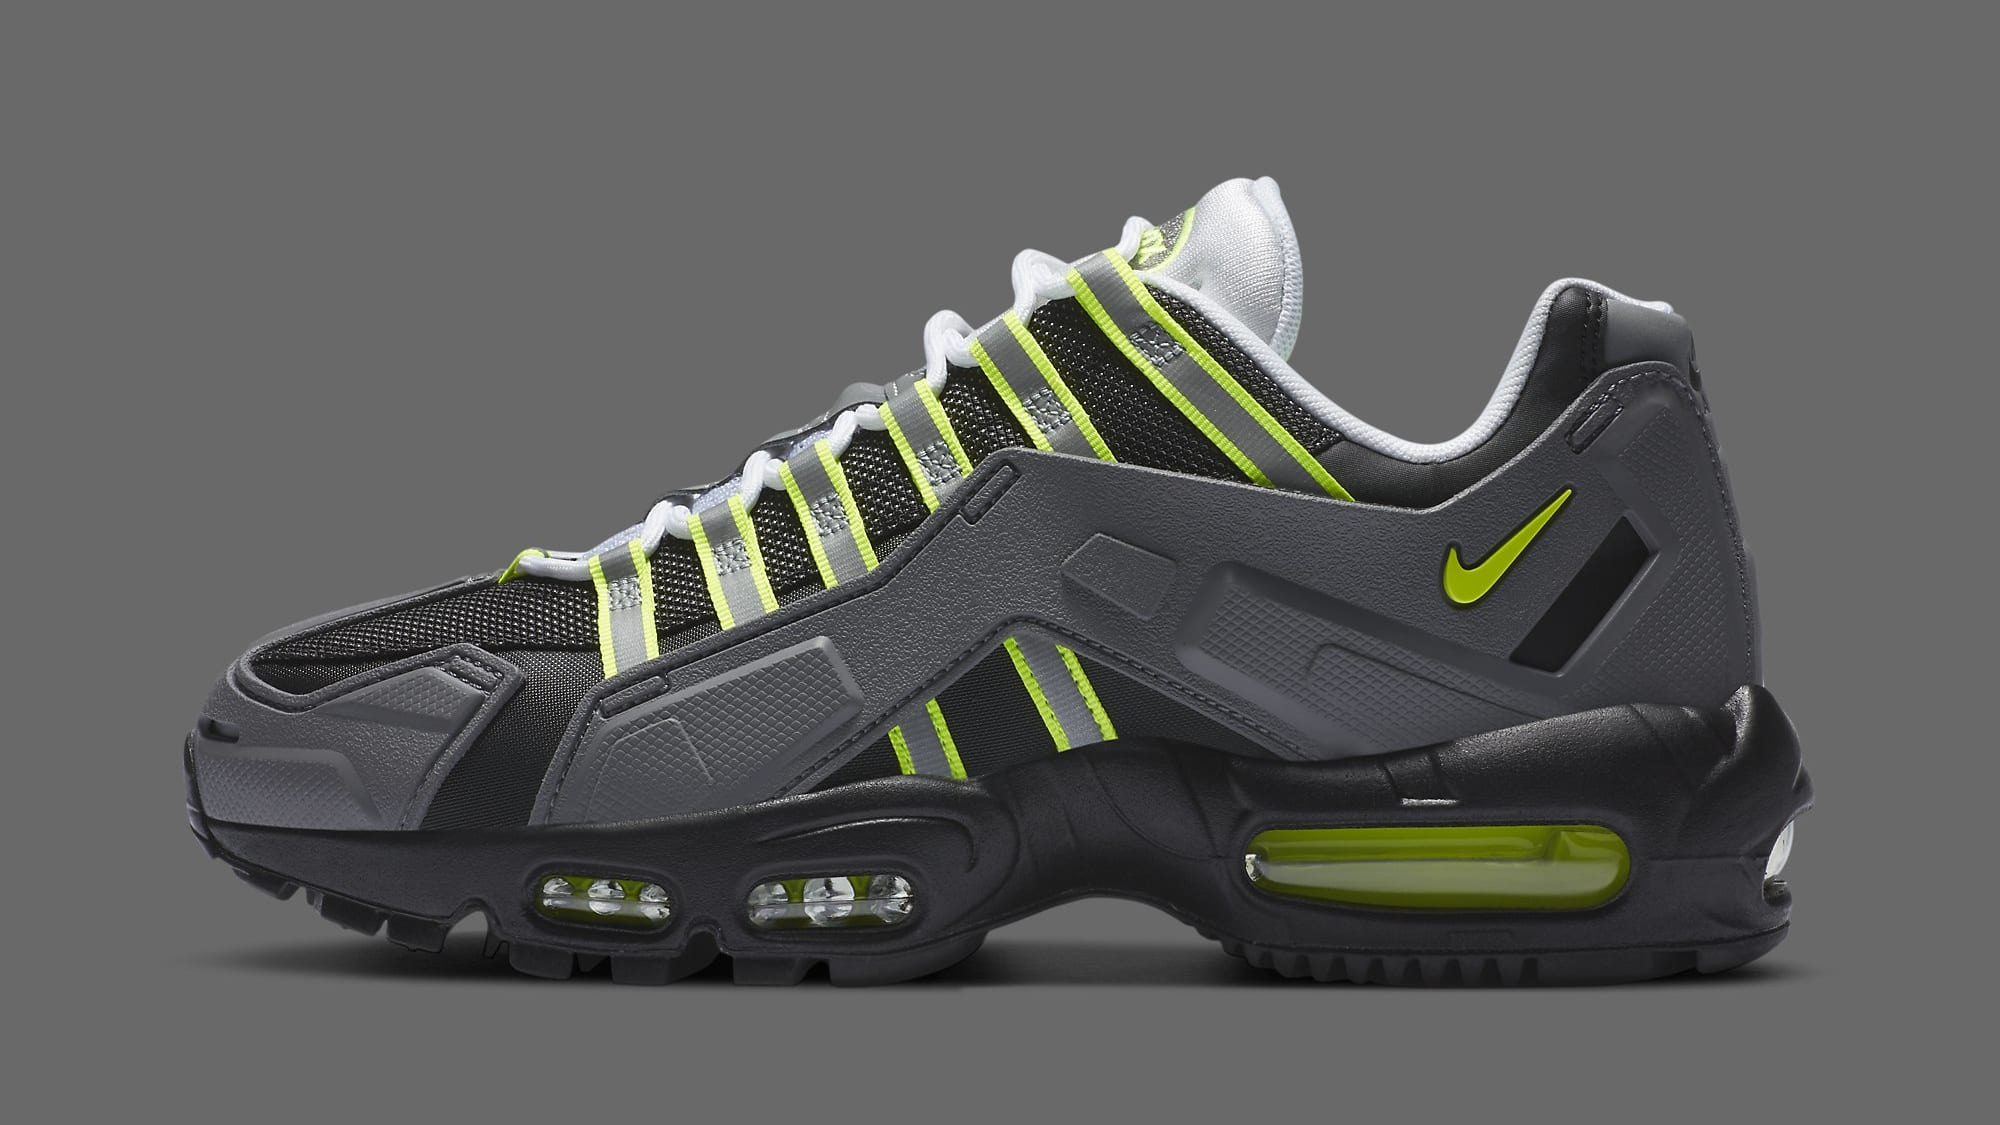 Nike Air Max 95 NDSTRKT 'Neon' CZ3591-002 Lateral